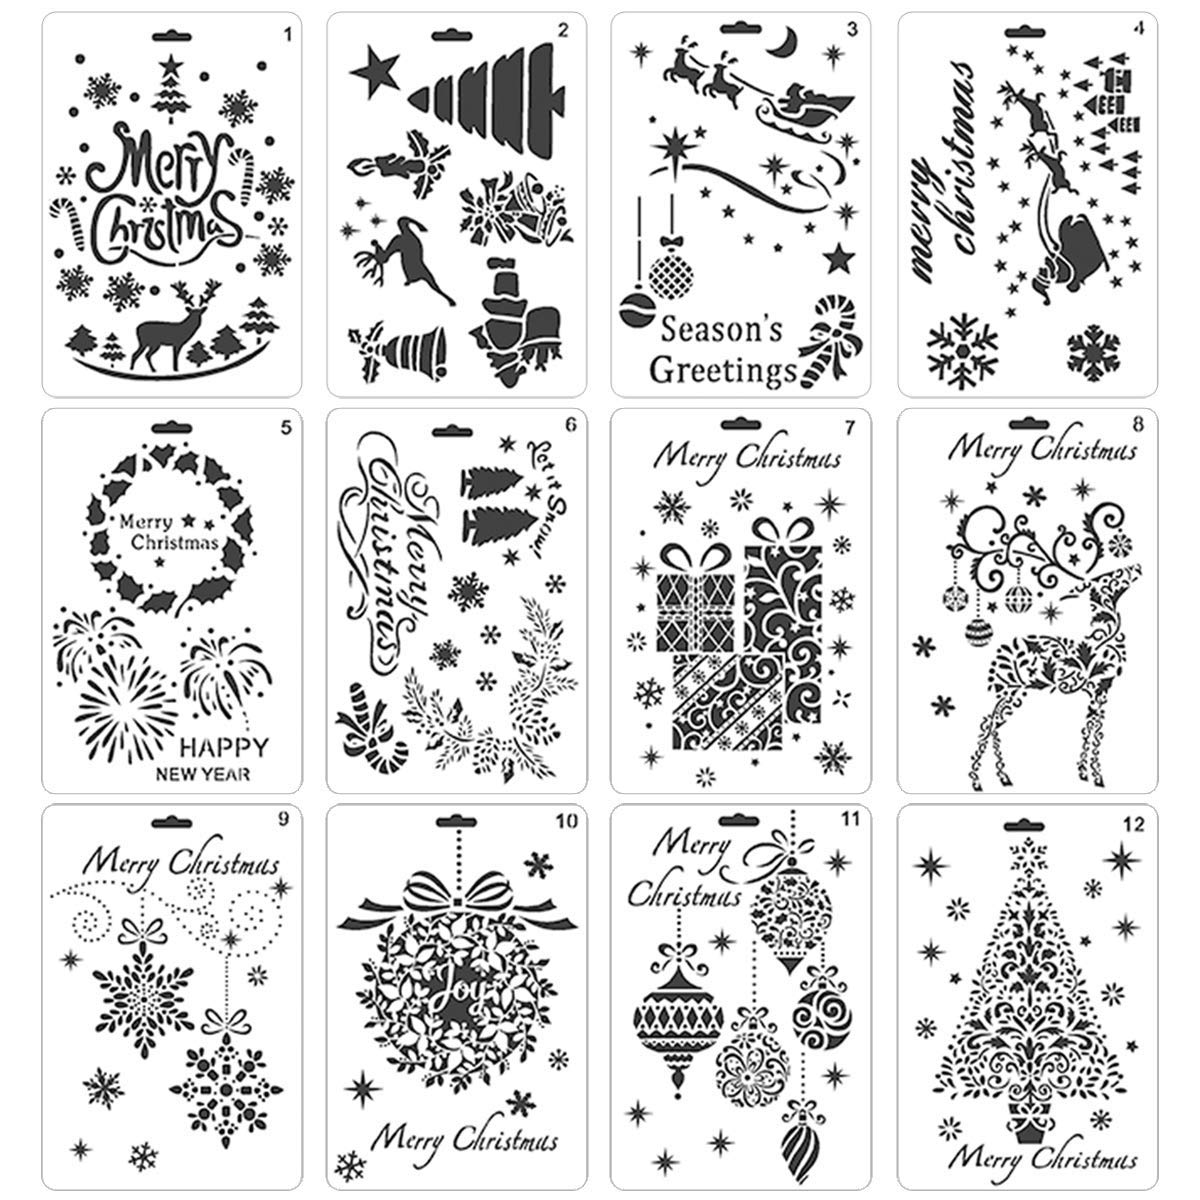 Pack of 12 Christmas DIY Painting Drawing Stencils Templates Merry Christmas Santa Claus Christmas Tree Snowflakes Bulbs Reindeers Firework